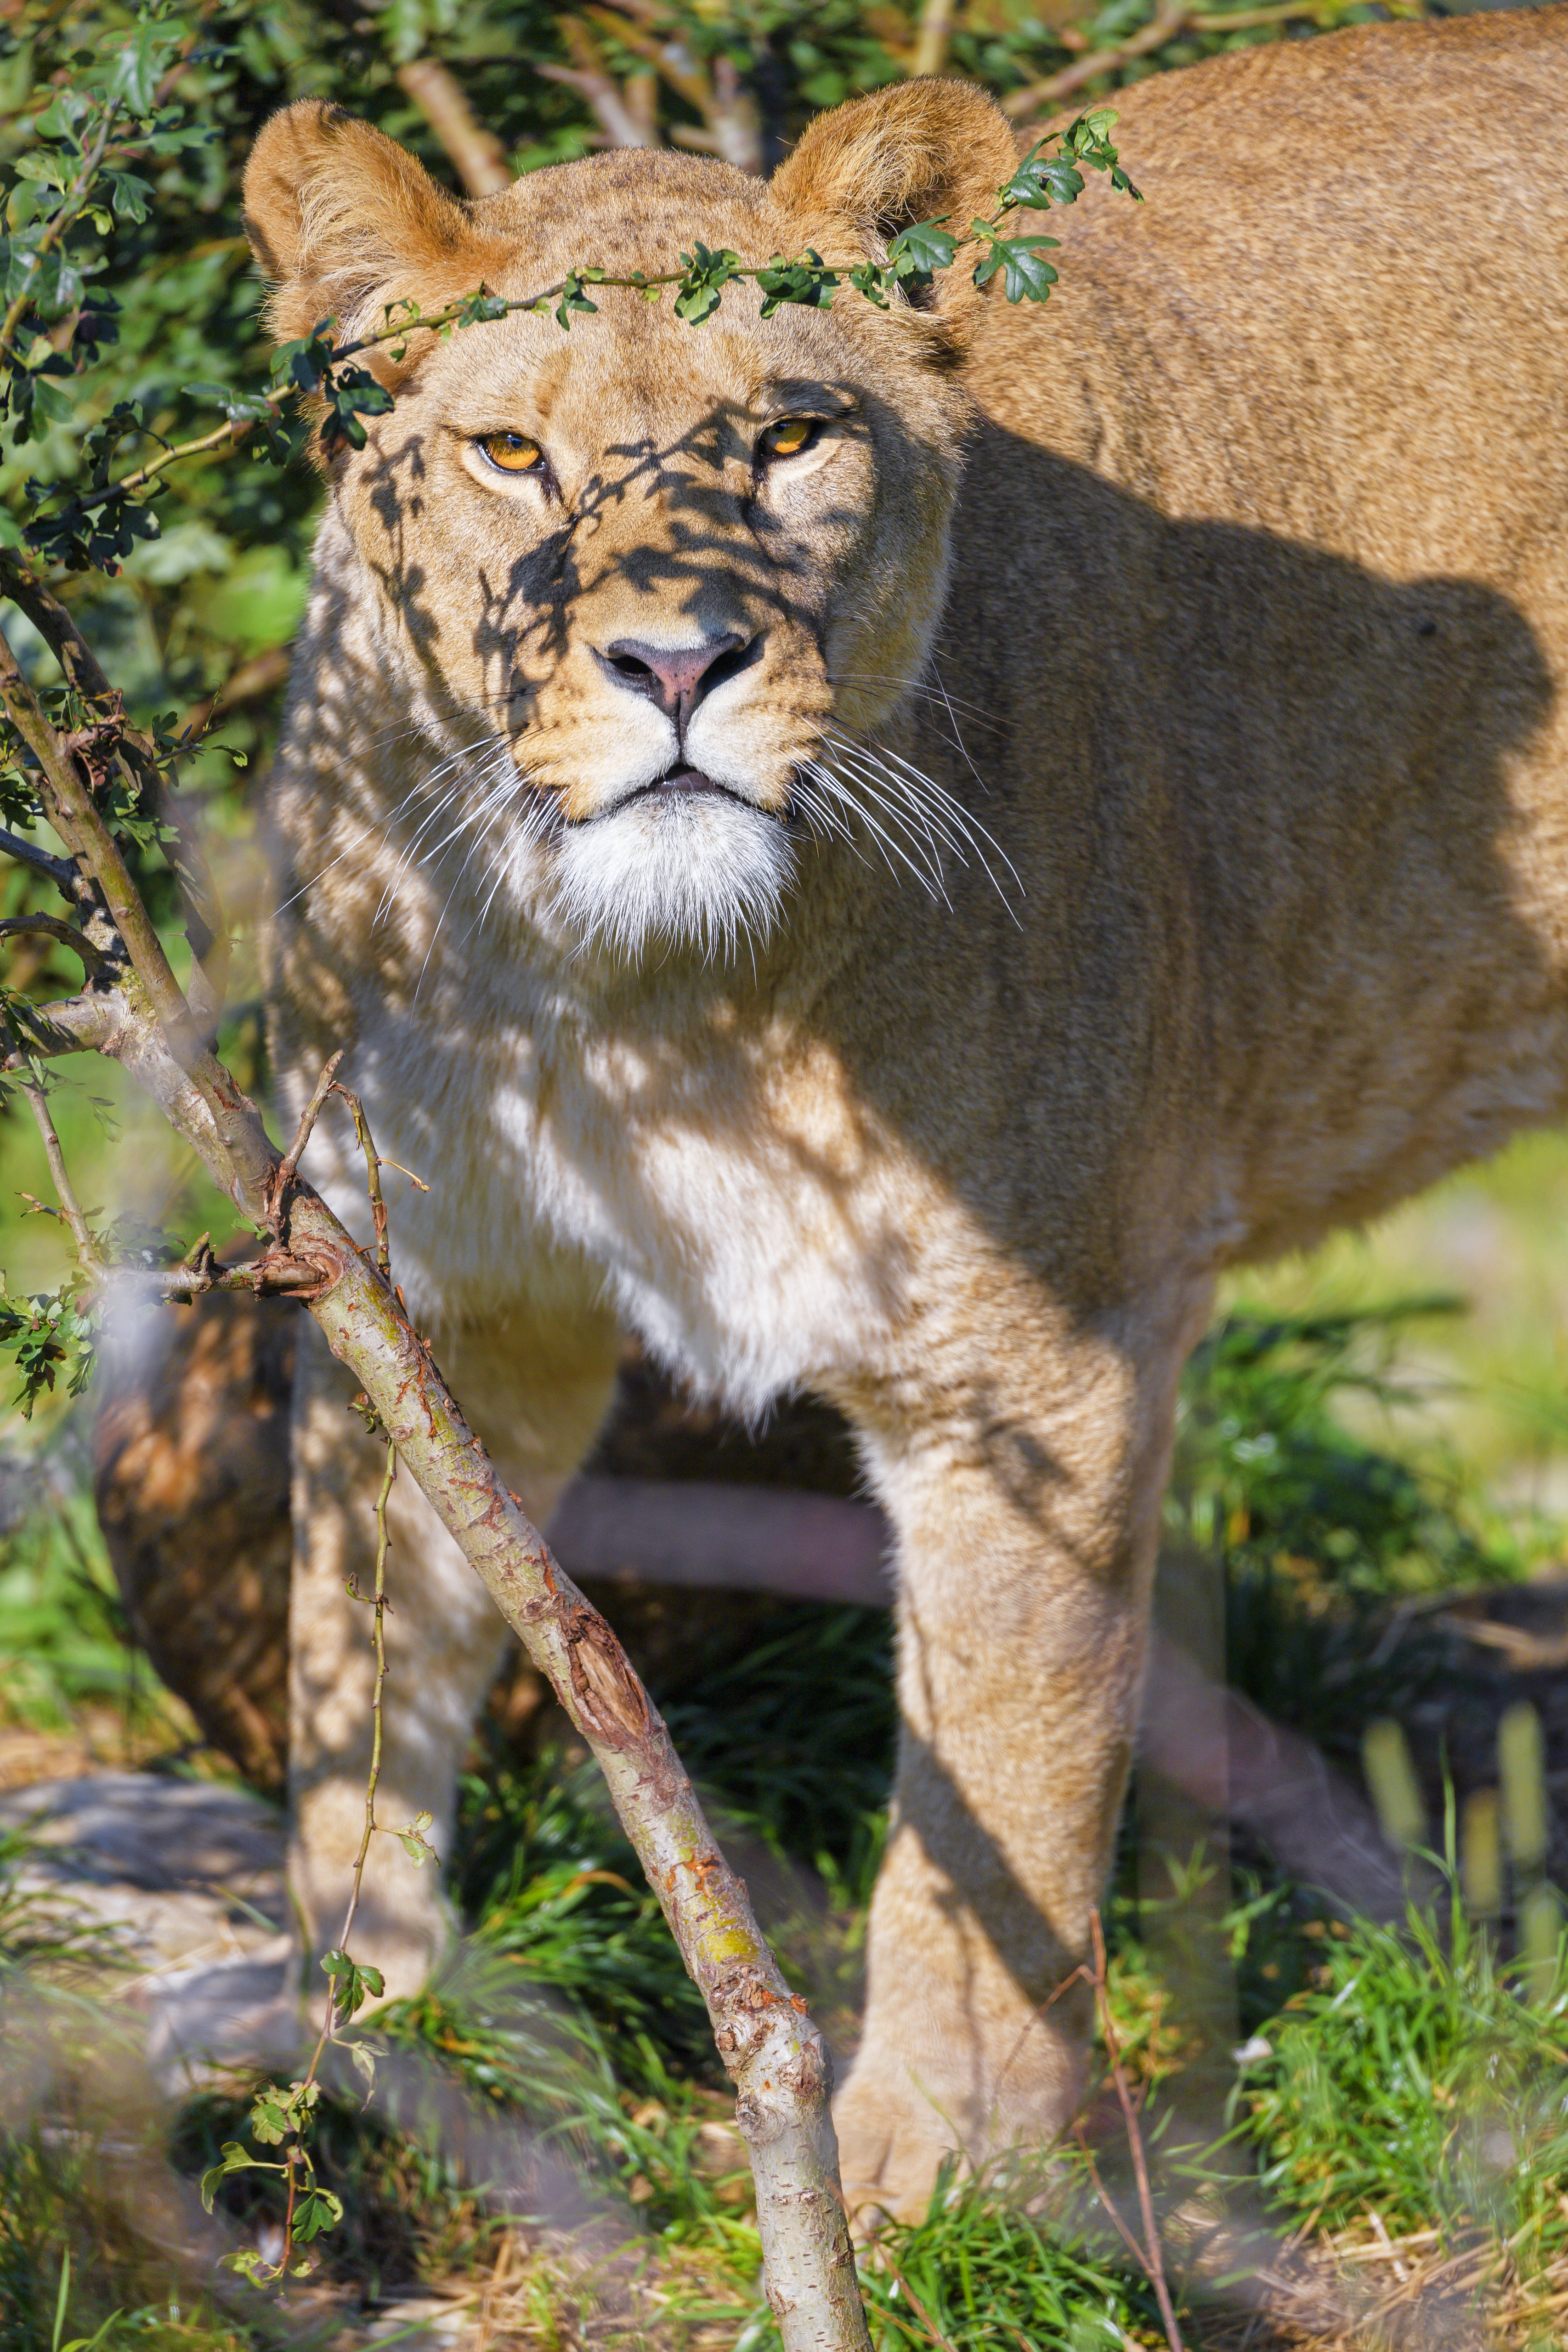 92235 download wallpaper Animals, Lioness, Big Cat, Beast, Predator, Sight, Opinion, Branches screensavers and pictures for free